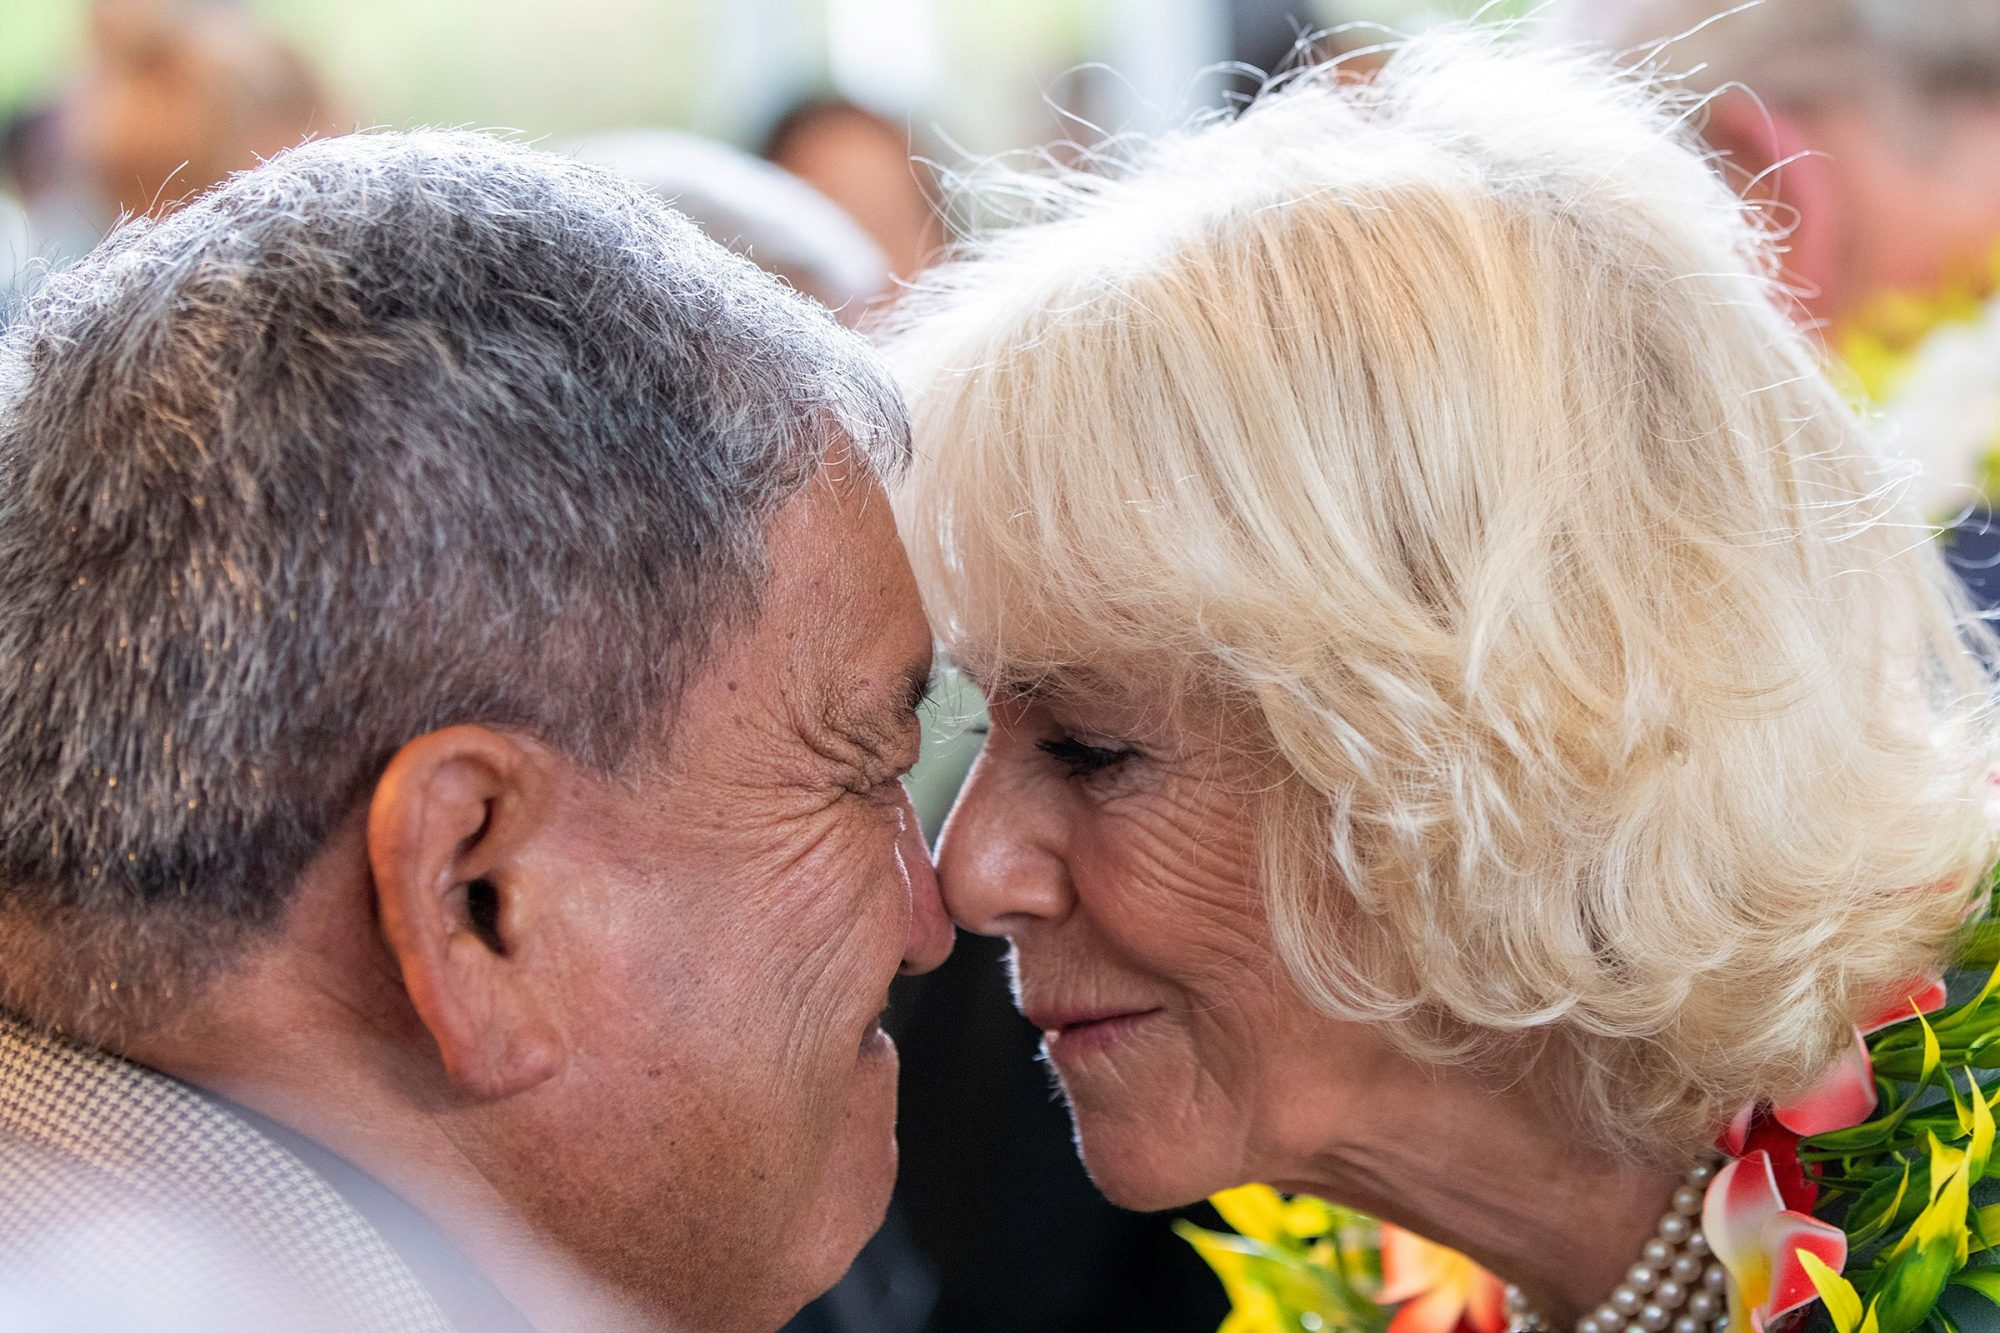 Britain's Camilla, Duchess of Cornwall receives a hongi, a traditional welcome from an Elder as she and Prince Charles, Prince of Wales visit the Wesley Community Centre in Auckland on November 18, 2019. - The Prince of Wales and Duchess of Cornwall are on an eight-day tour of New Zealand.